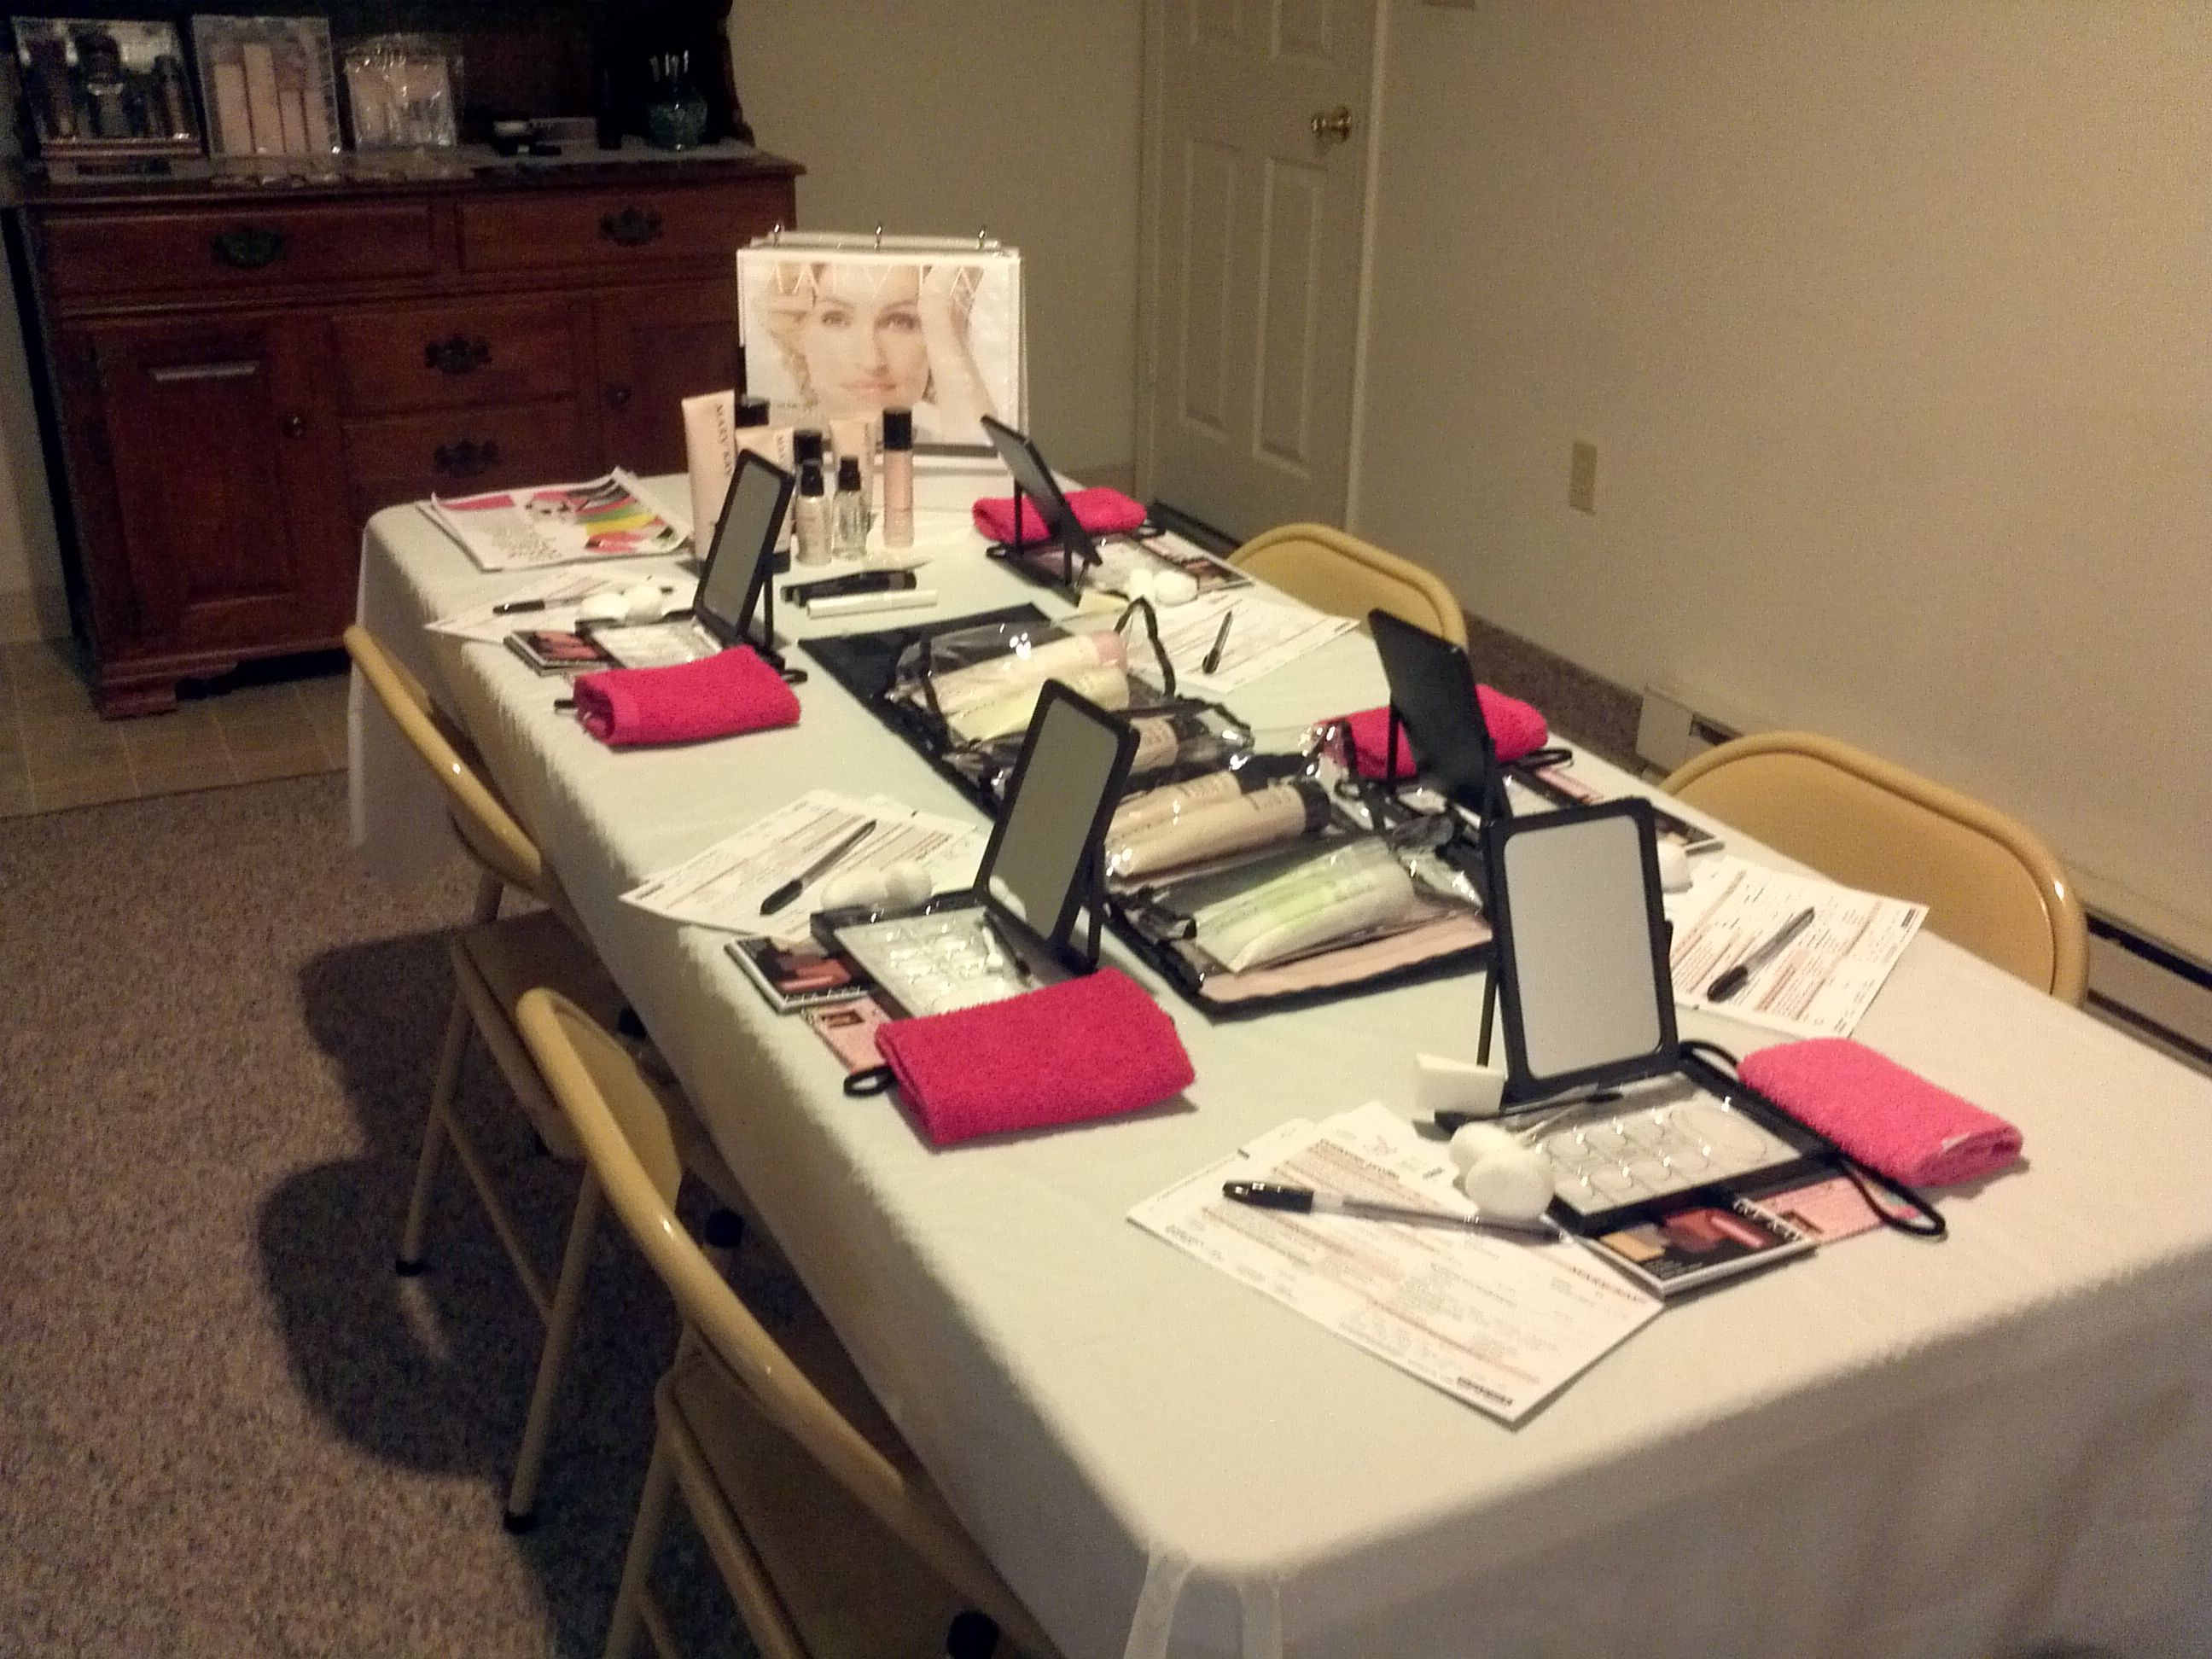 Ready For A Mary Kay Skin Care Class Www Marykay Com Dianalady Mary Kay Skin Care Mary Kay Skin Care Class Mary Kay